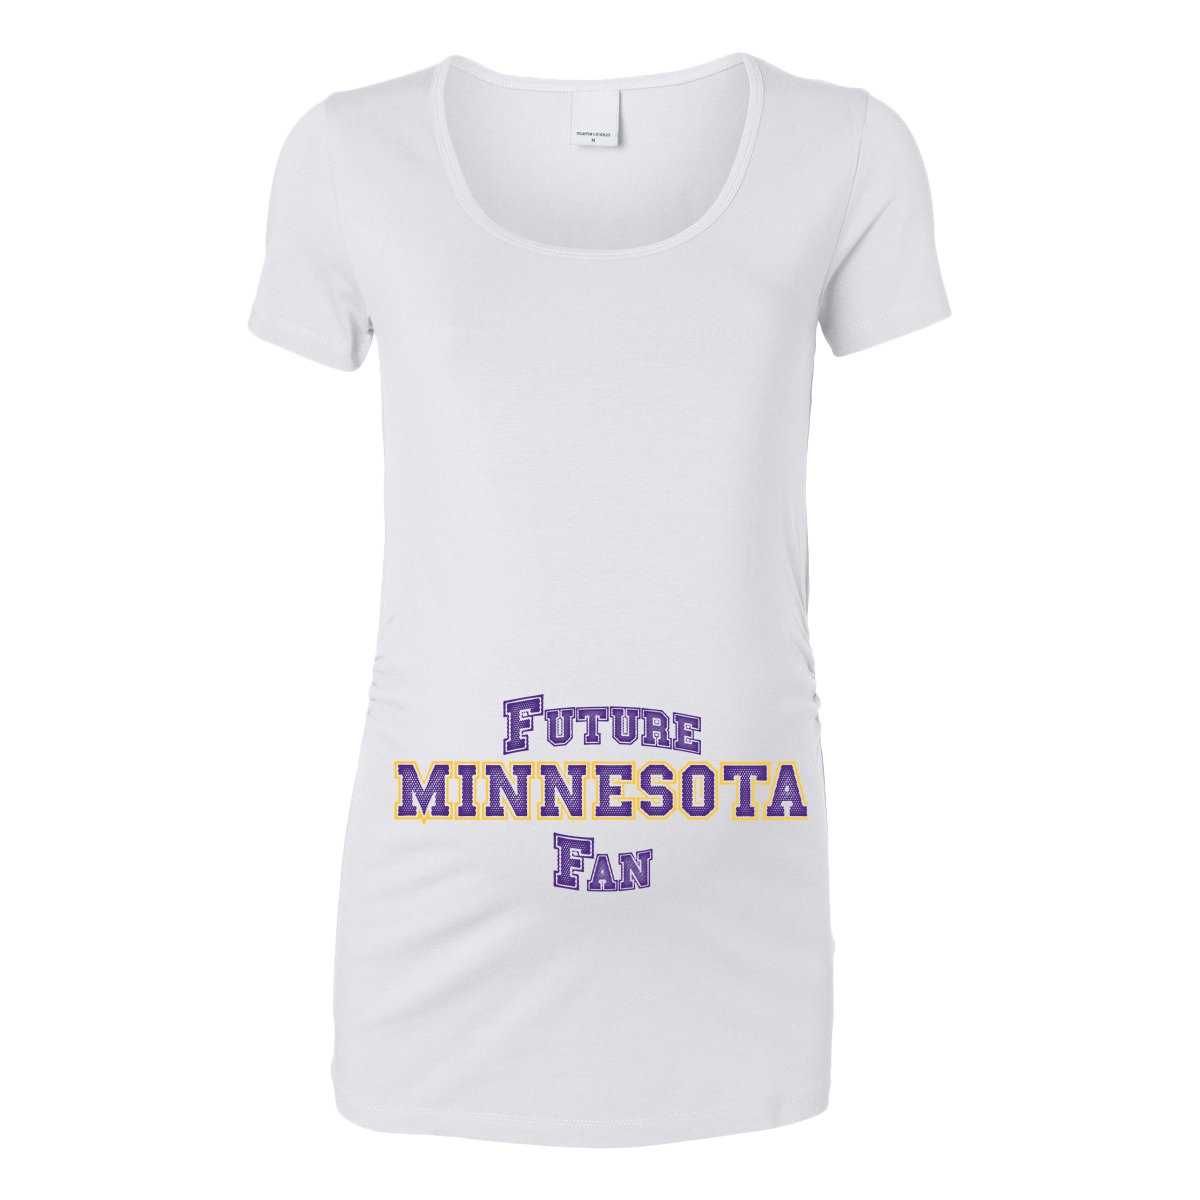 Future Minnesota Fan Women's Maternity T-Shirt 102035